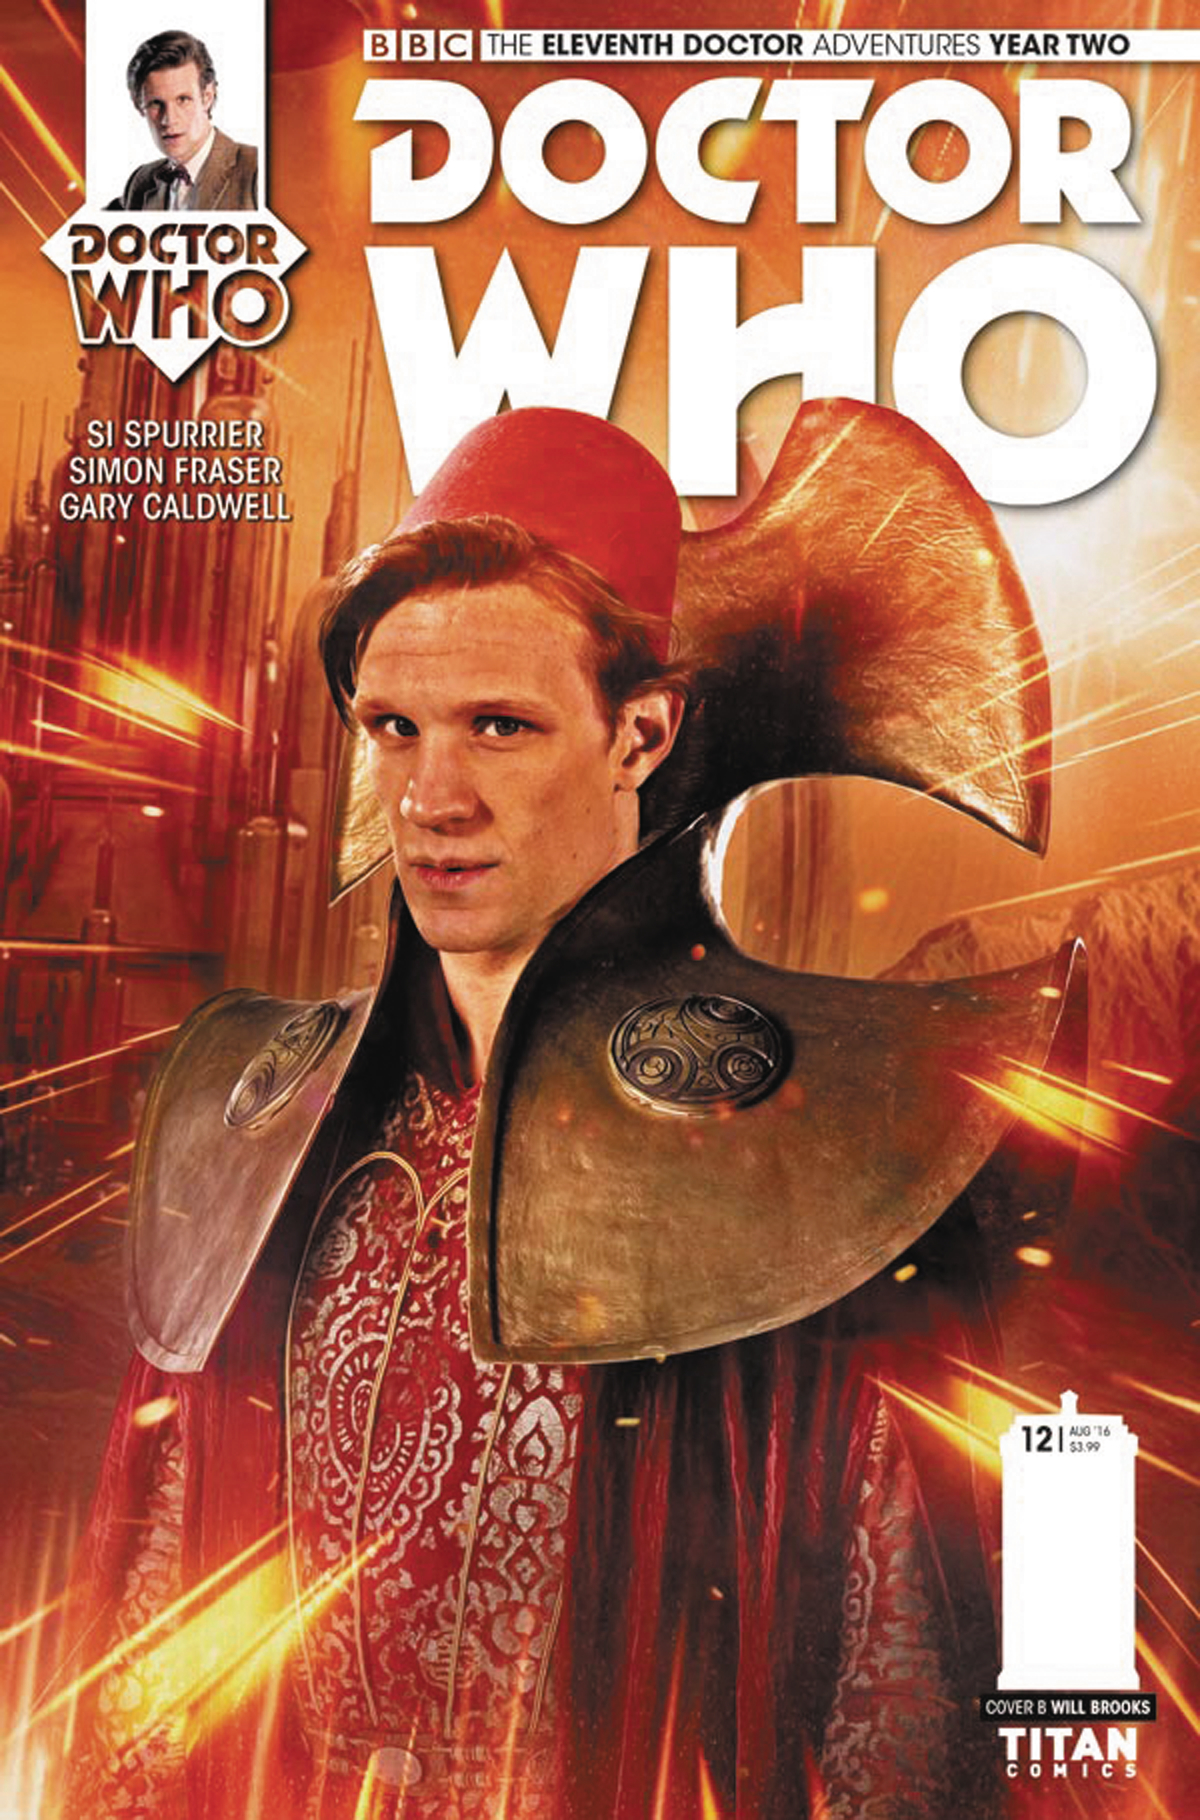 DOCTOR WHO 11TH YEAR TWO #12 CVR B PHOTO